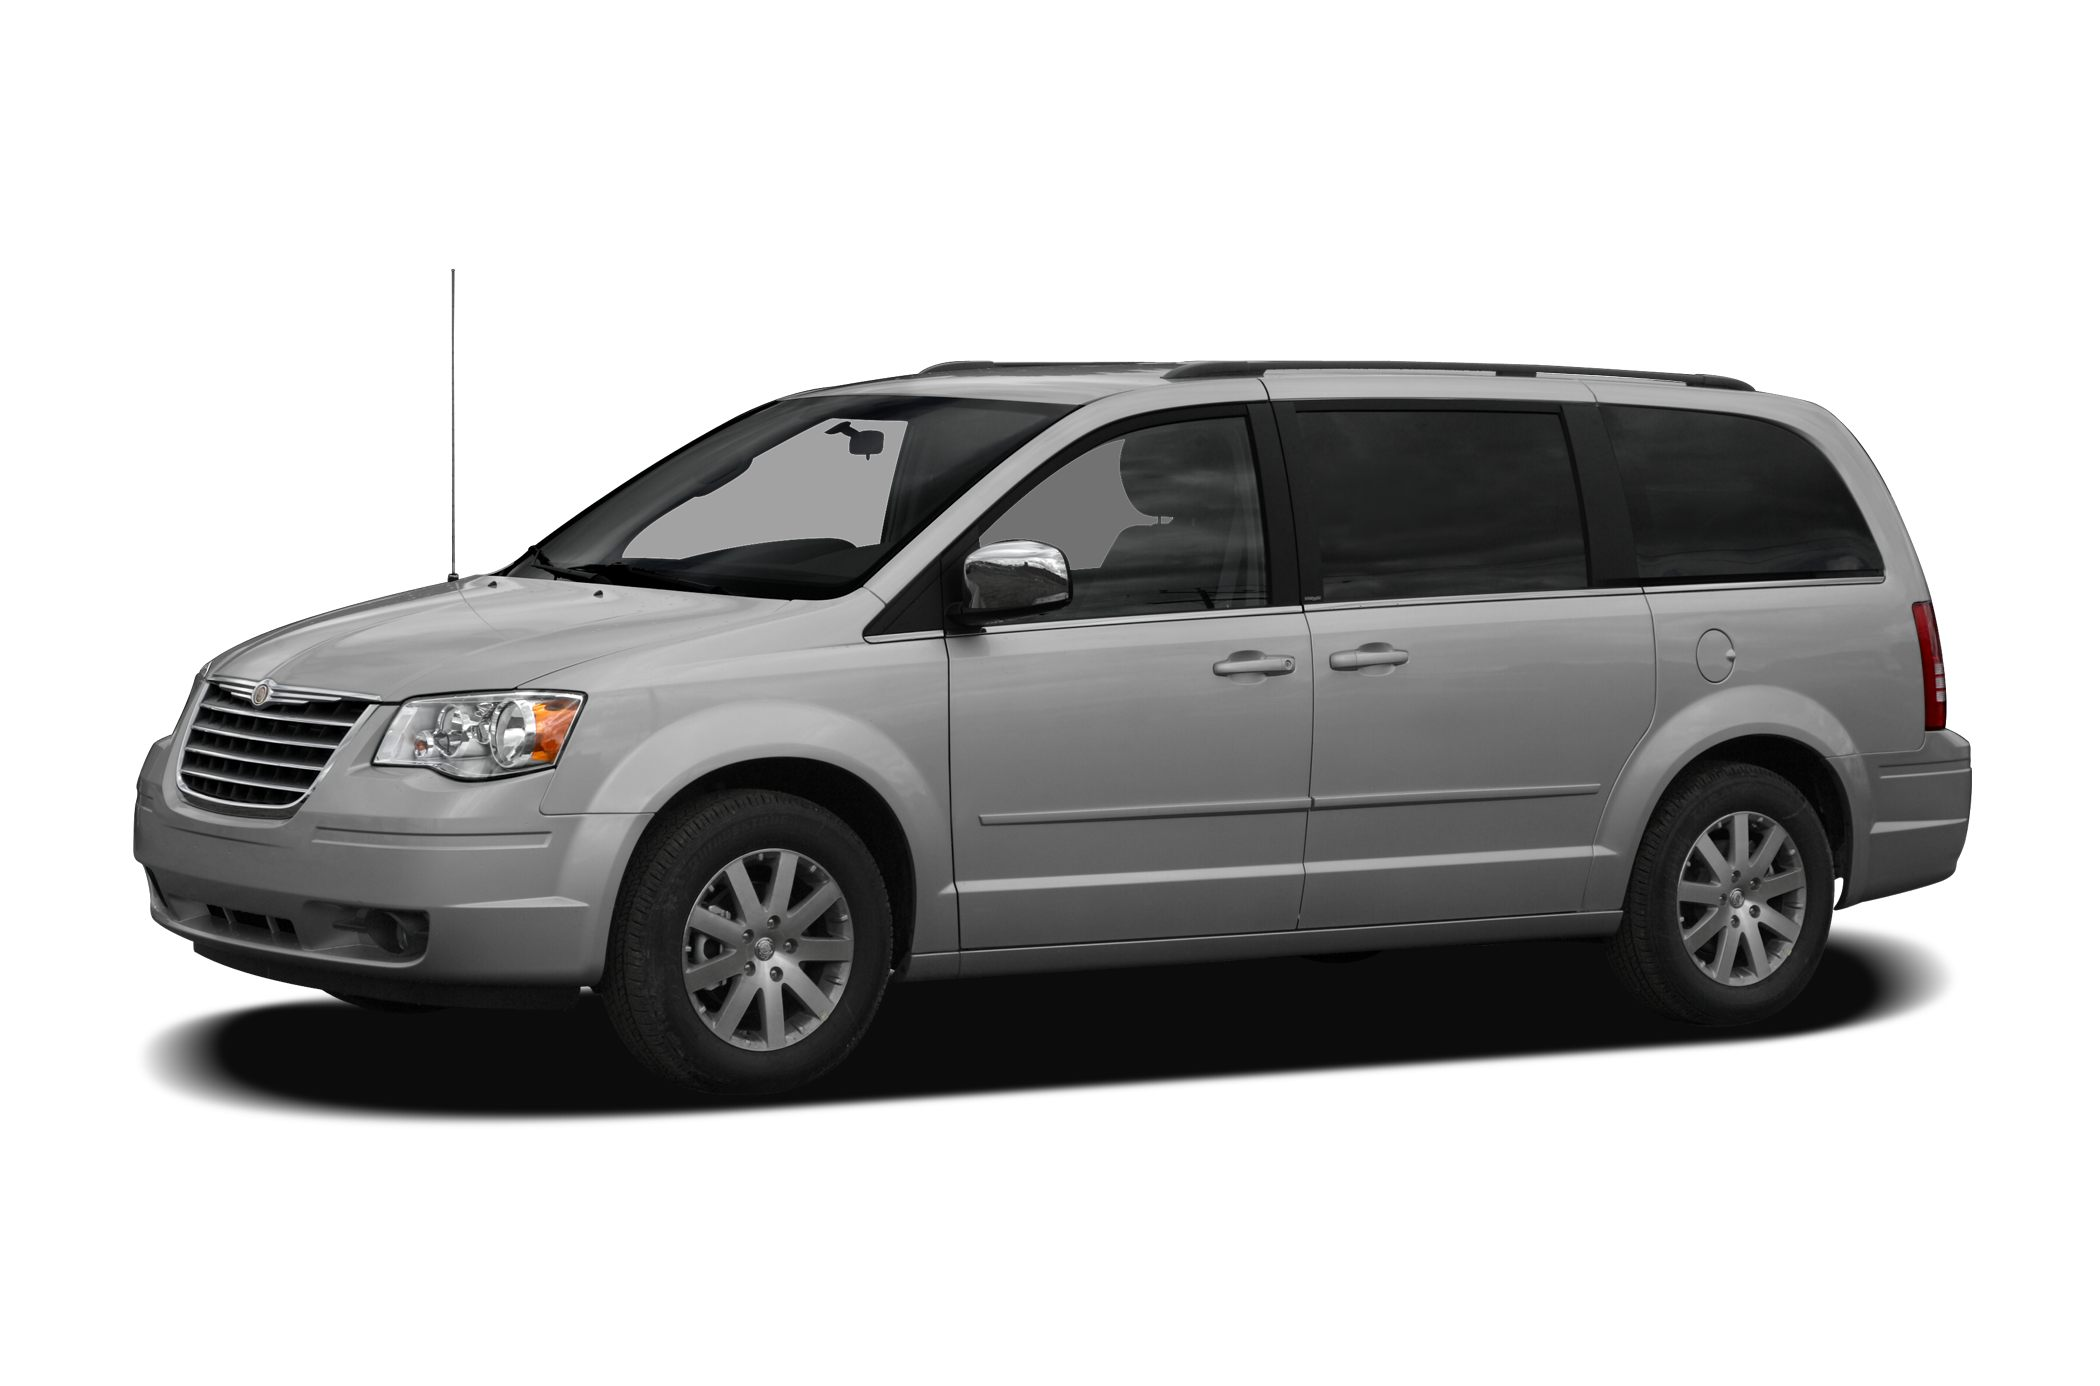 2008 Chrysler Town & Country Touring Minivan for sale in Toccoa for $9,432 with 95,050 miles.